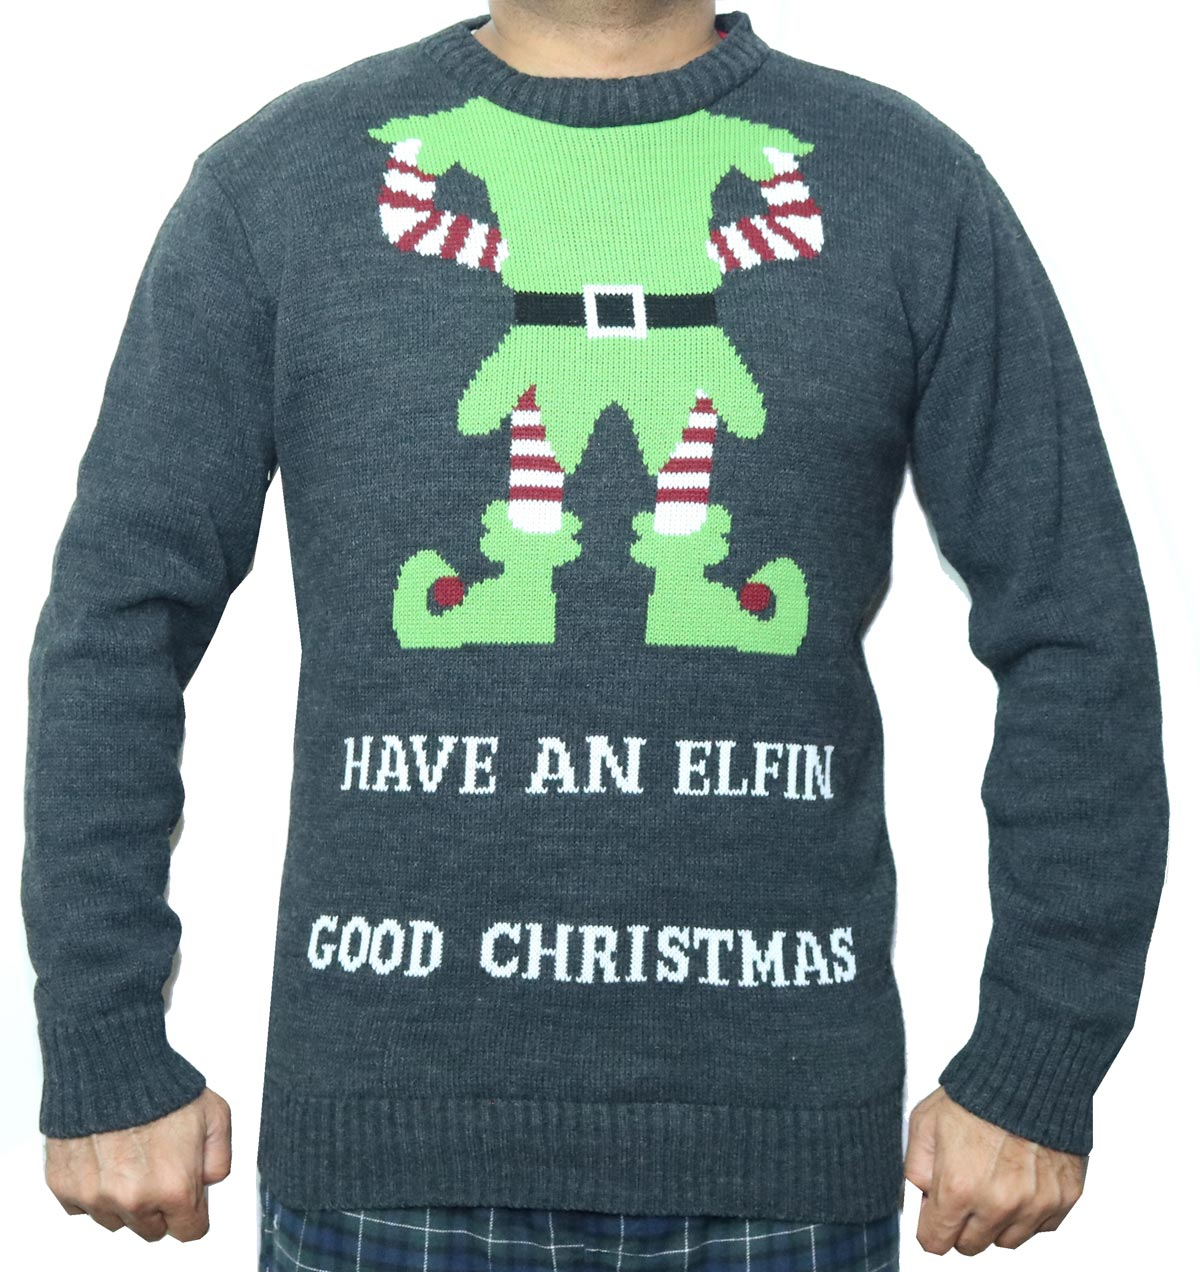 Have An Elf Body Good Christmas Sweater - Ugly Christmas Sweaters ...